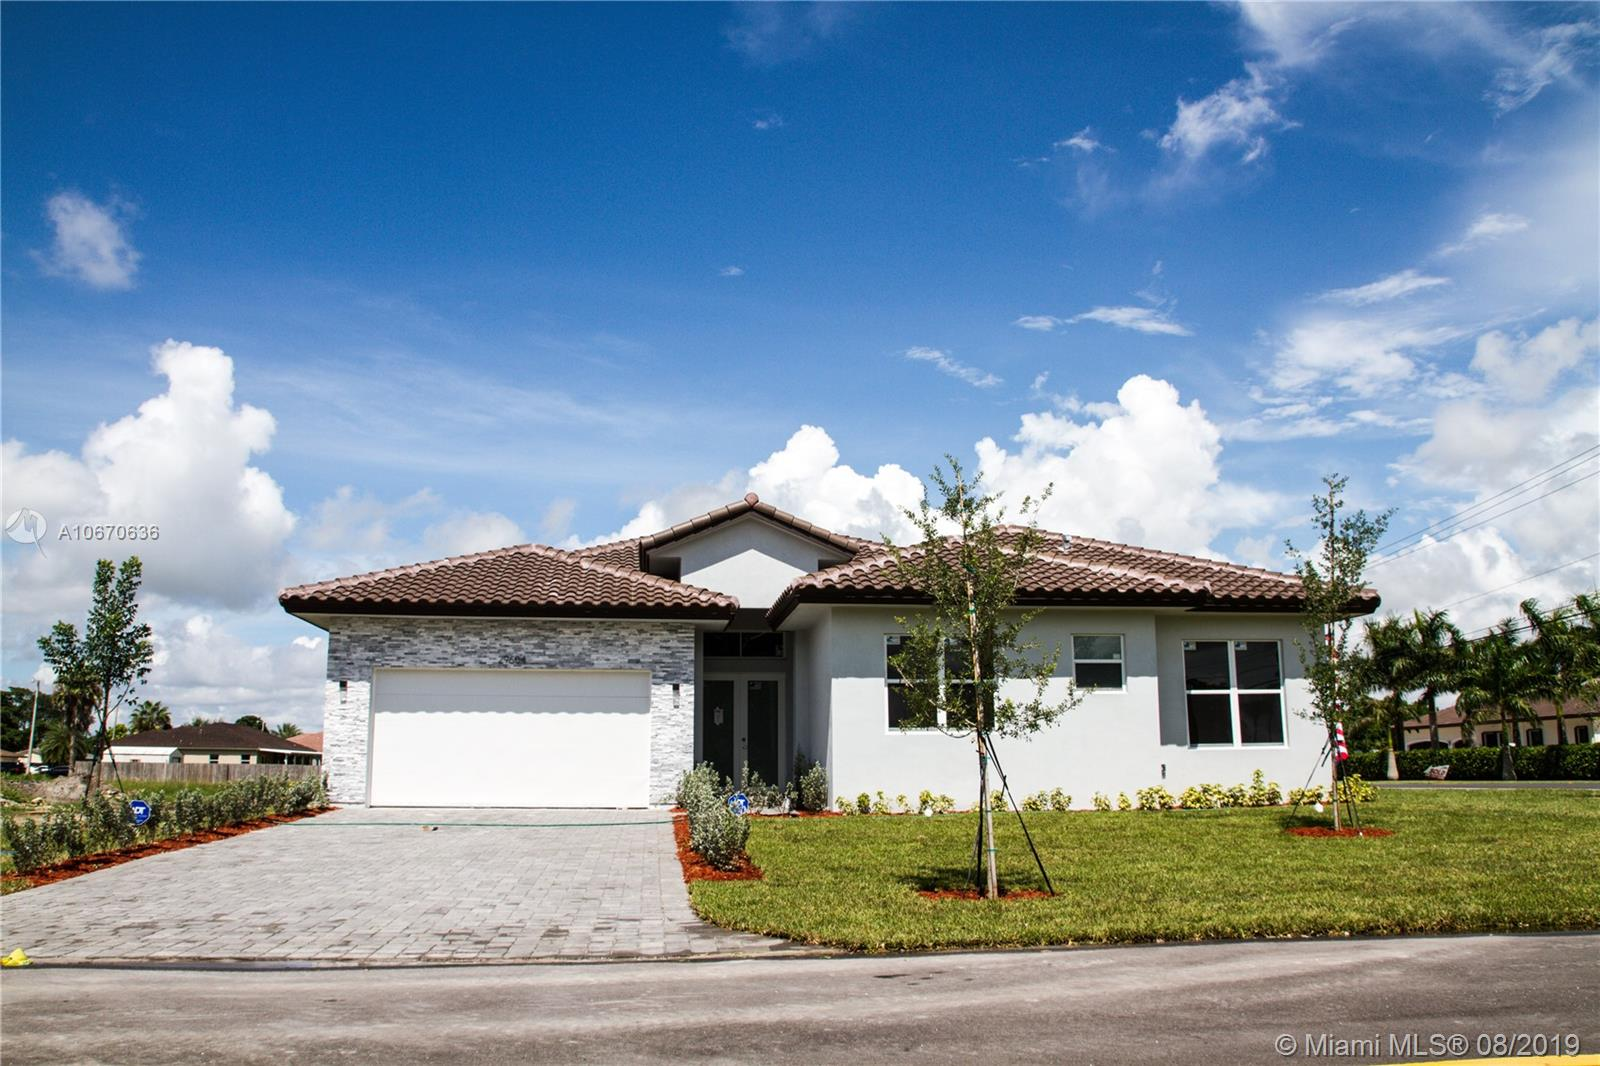 29641 SW 169 Ave, Homestead, Florida